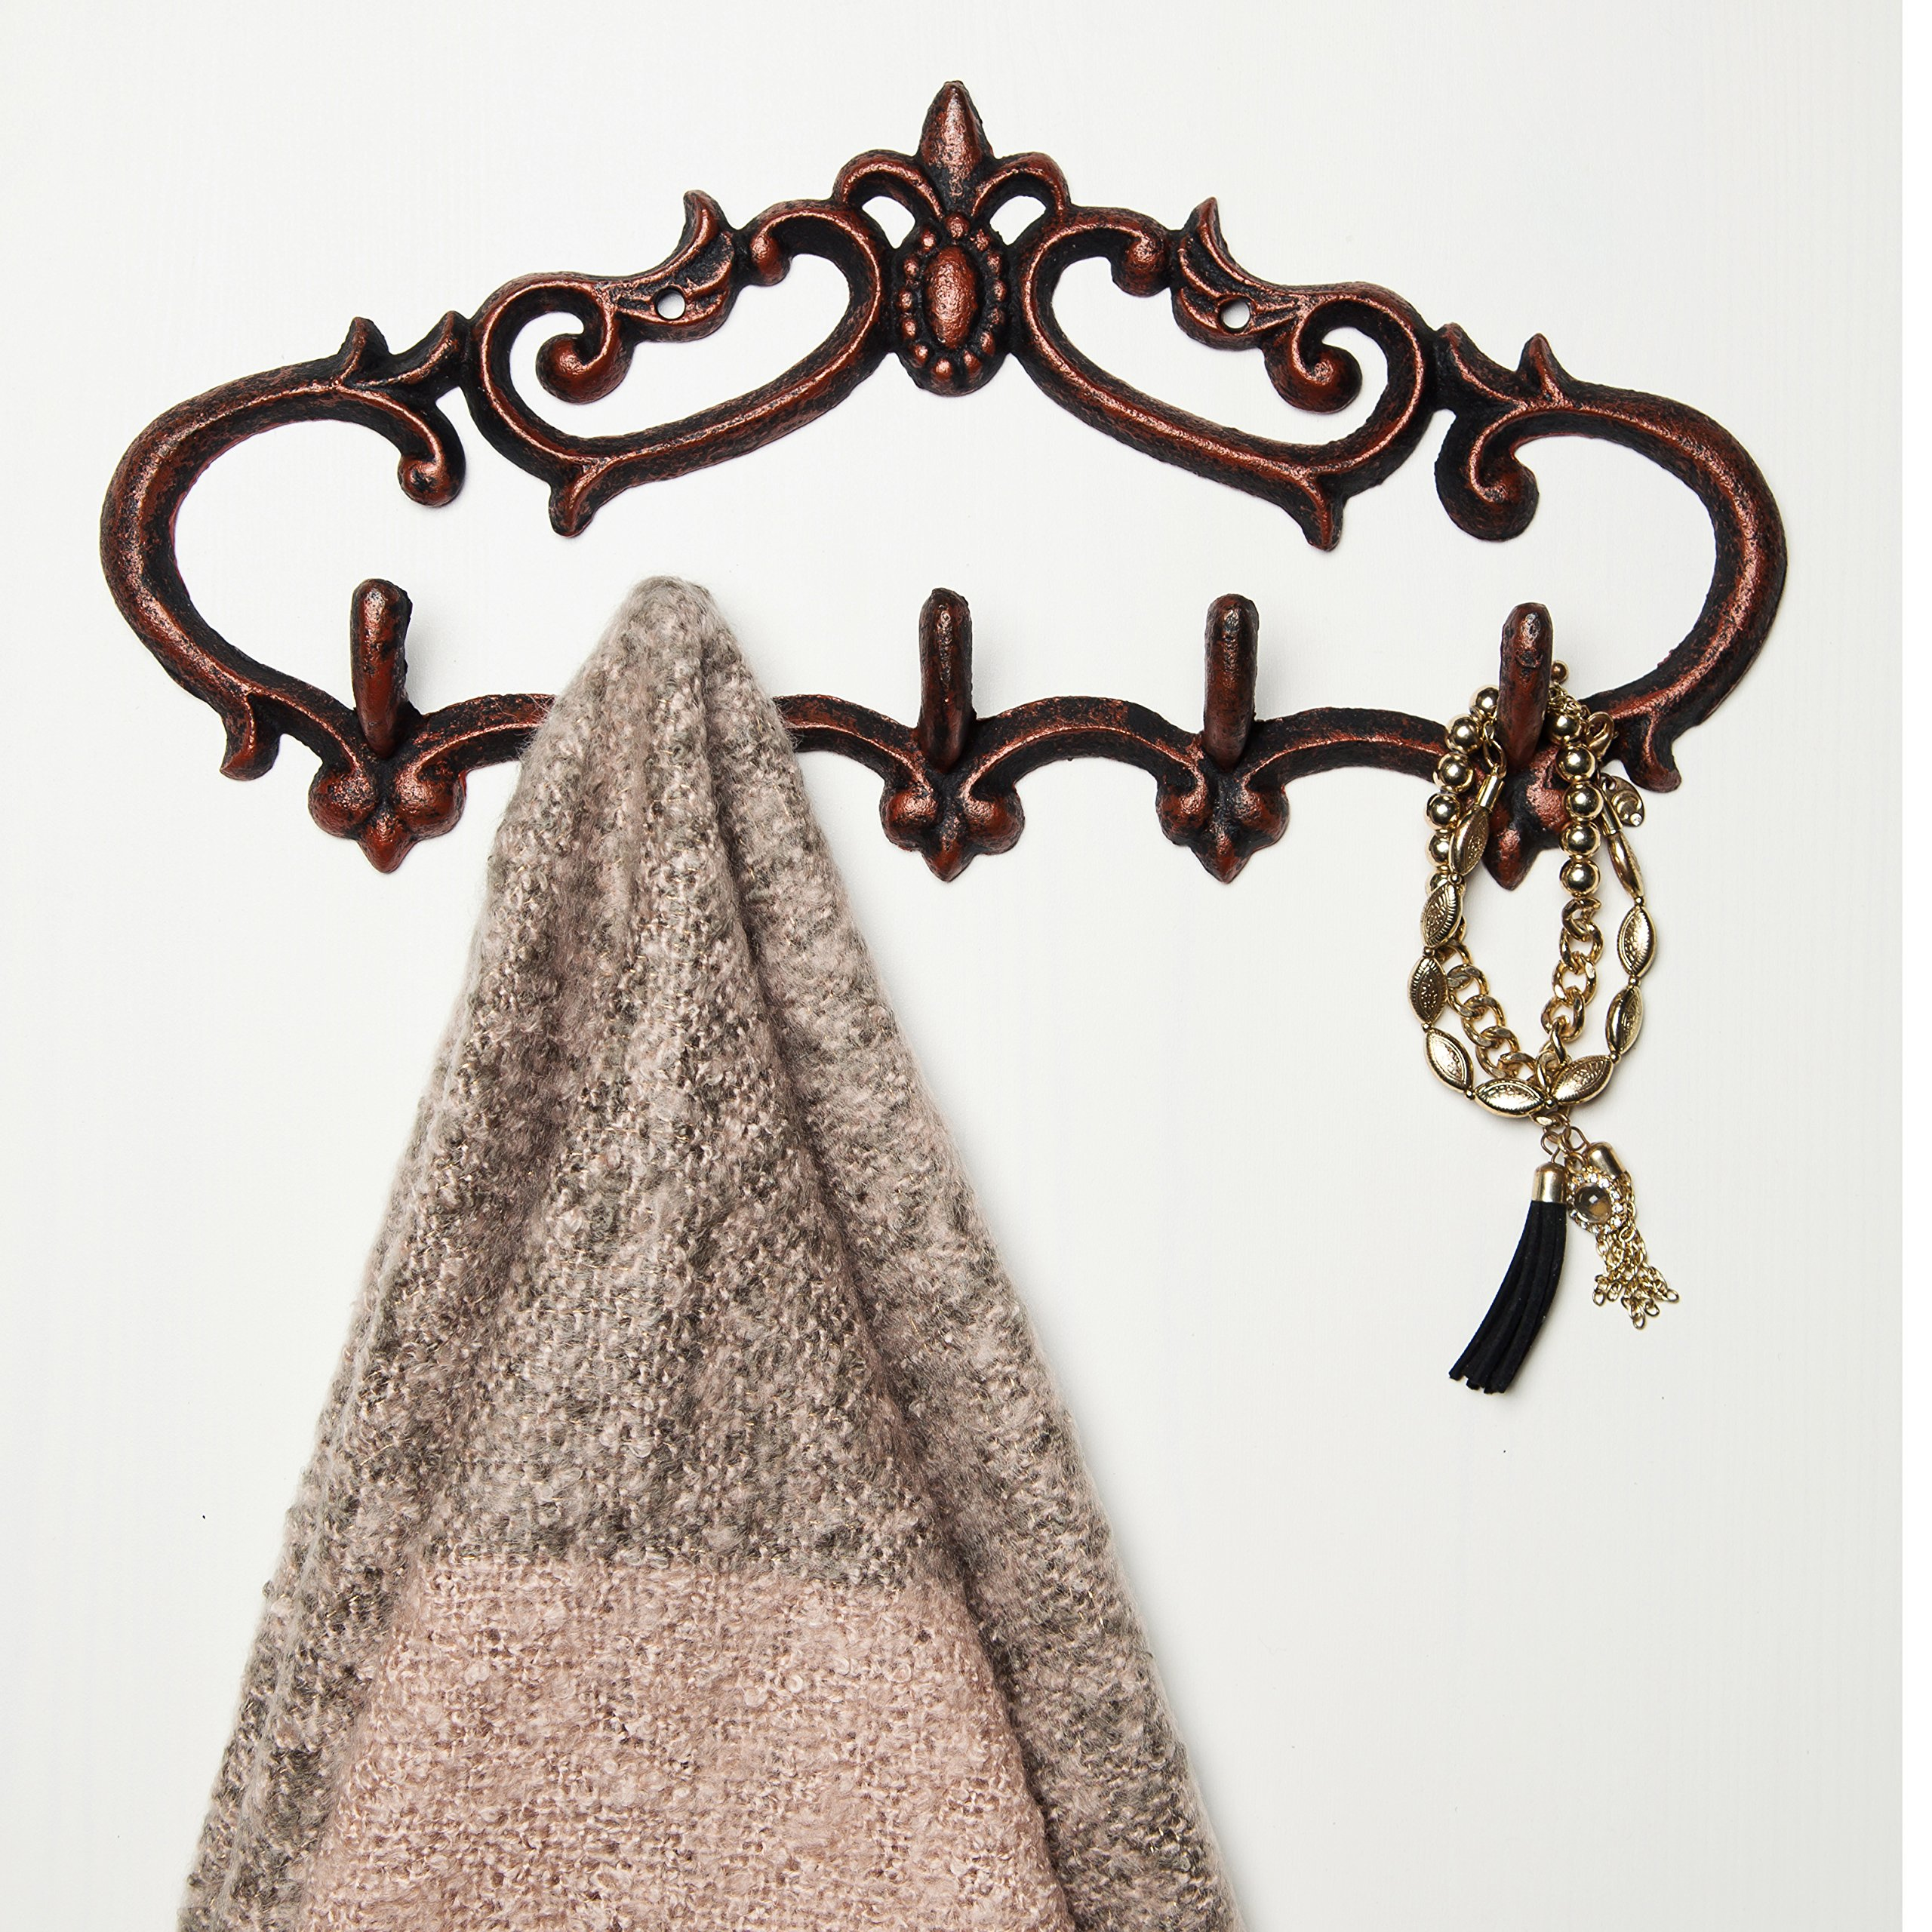 """Comfify Cast Iron Wall Hanger – Vintage Design with 5 Hooks - Keys, Towels, etc - Wall Mounted, Metal, Heavy Duty, Rustic, Vintage, Decorative Gift Idea - 12.9x 6.1"""""""